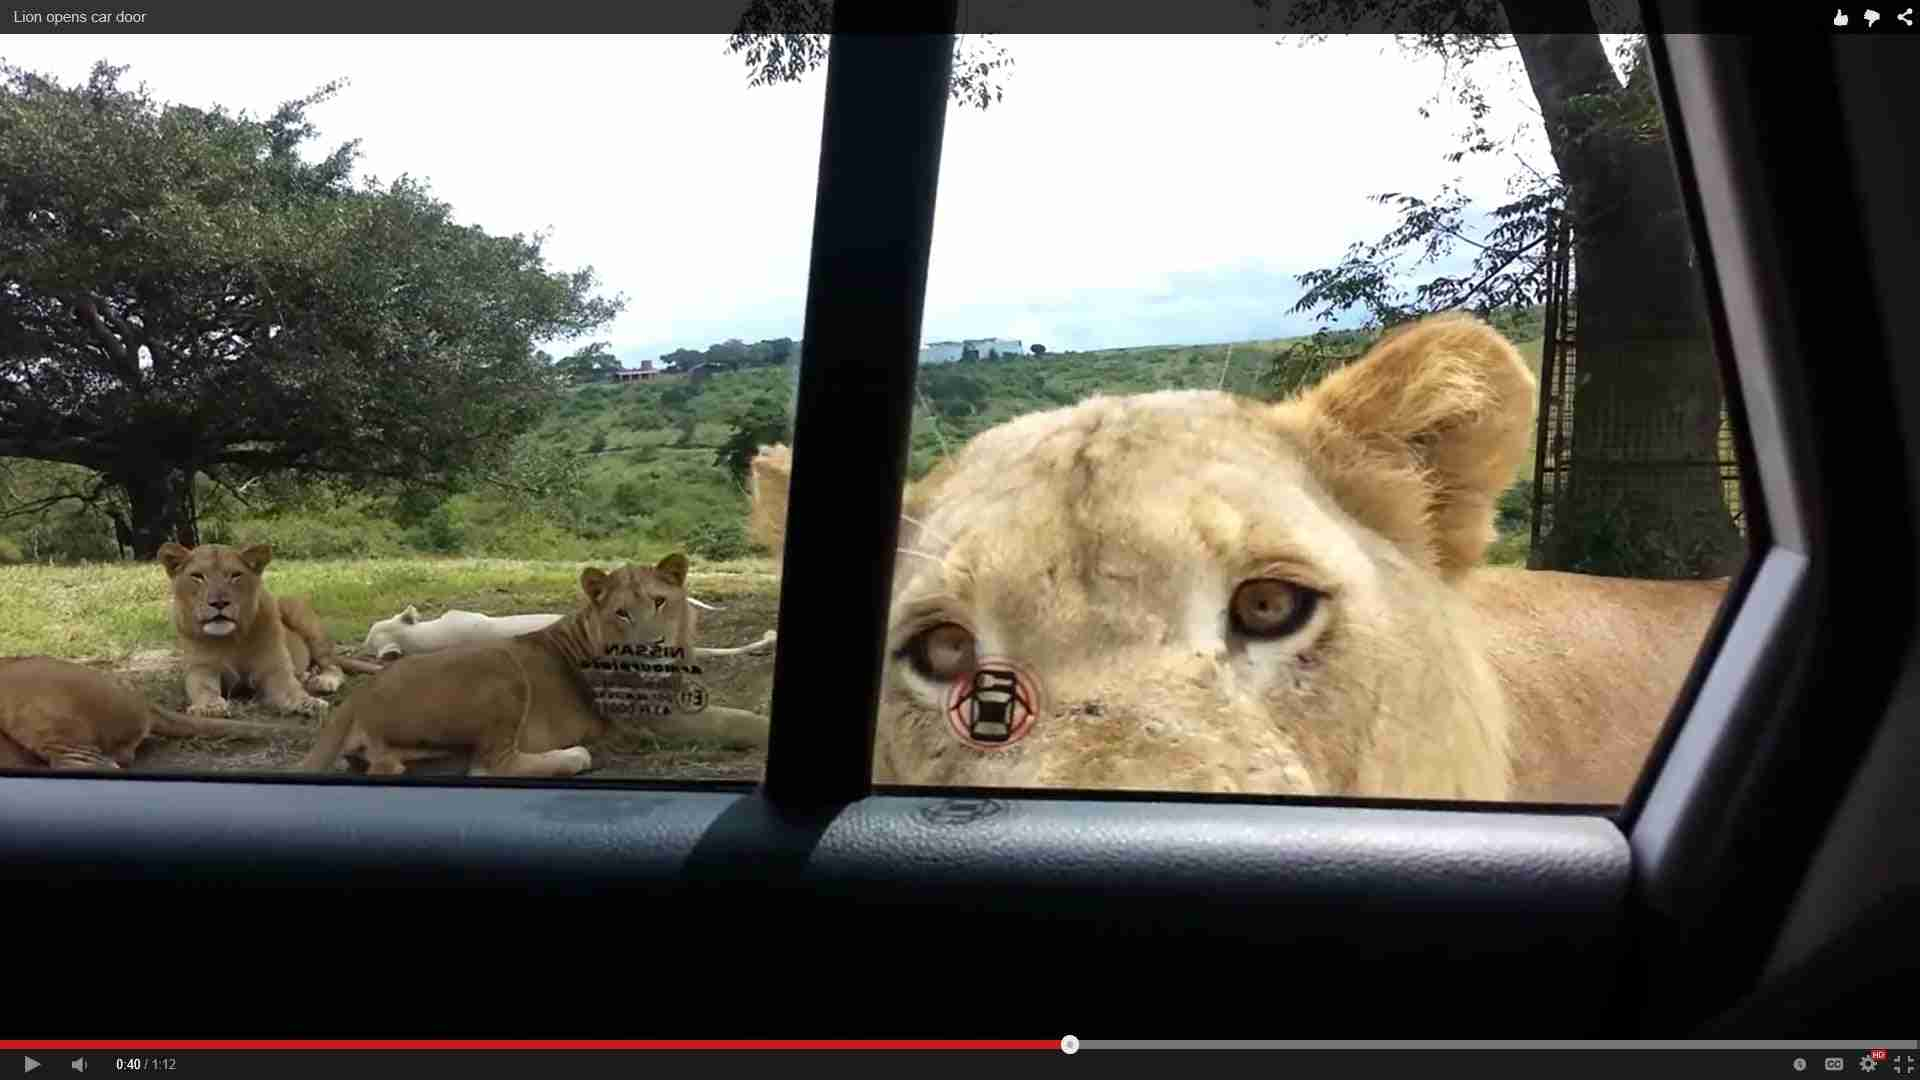 Lion opens car door - YouTube